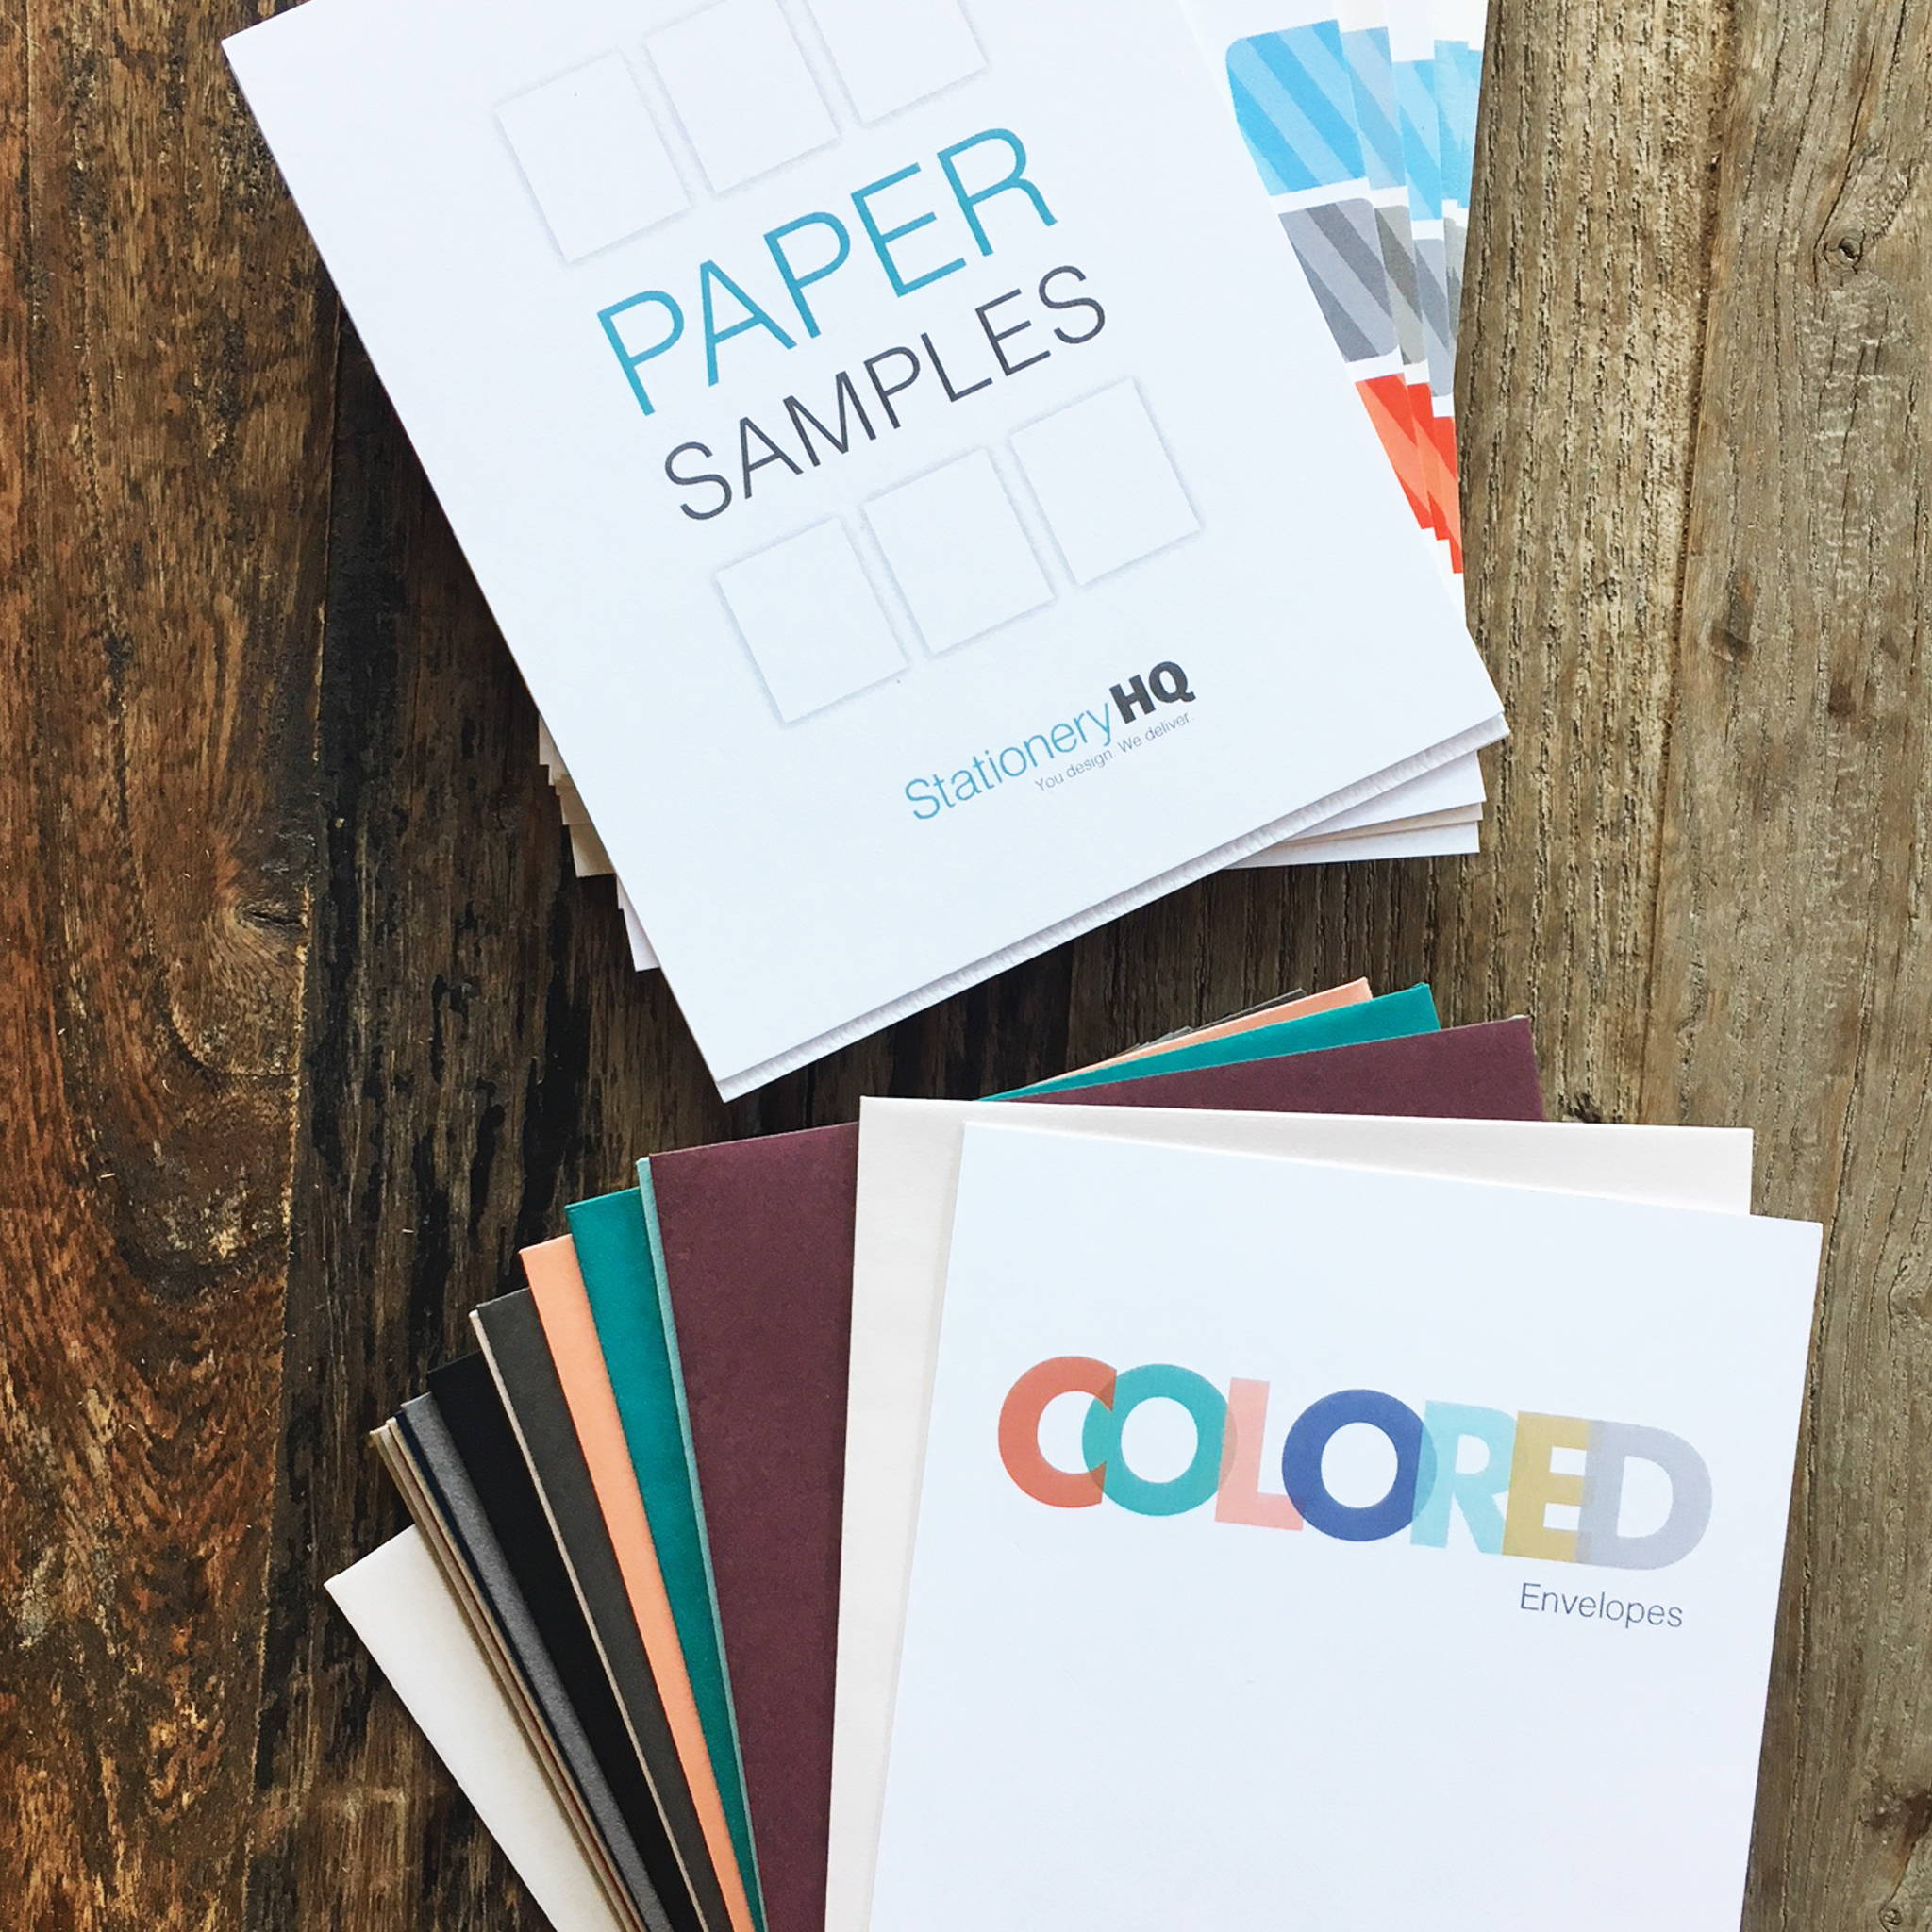 Paper & Envelope Sample Packs